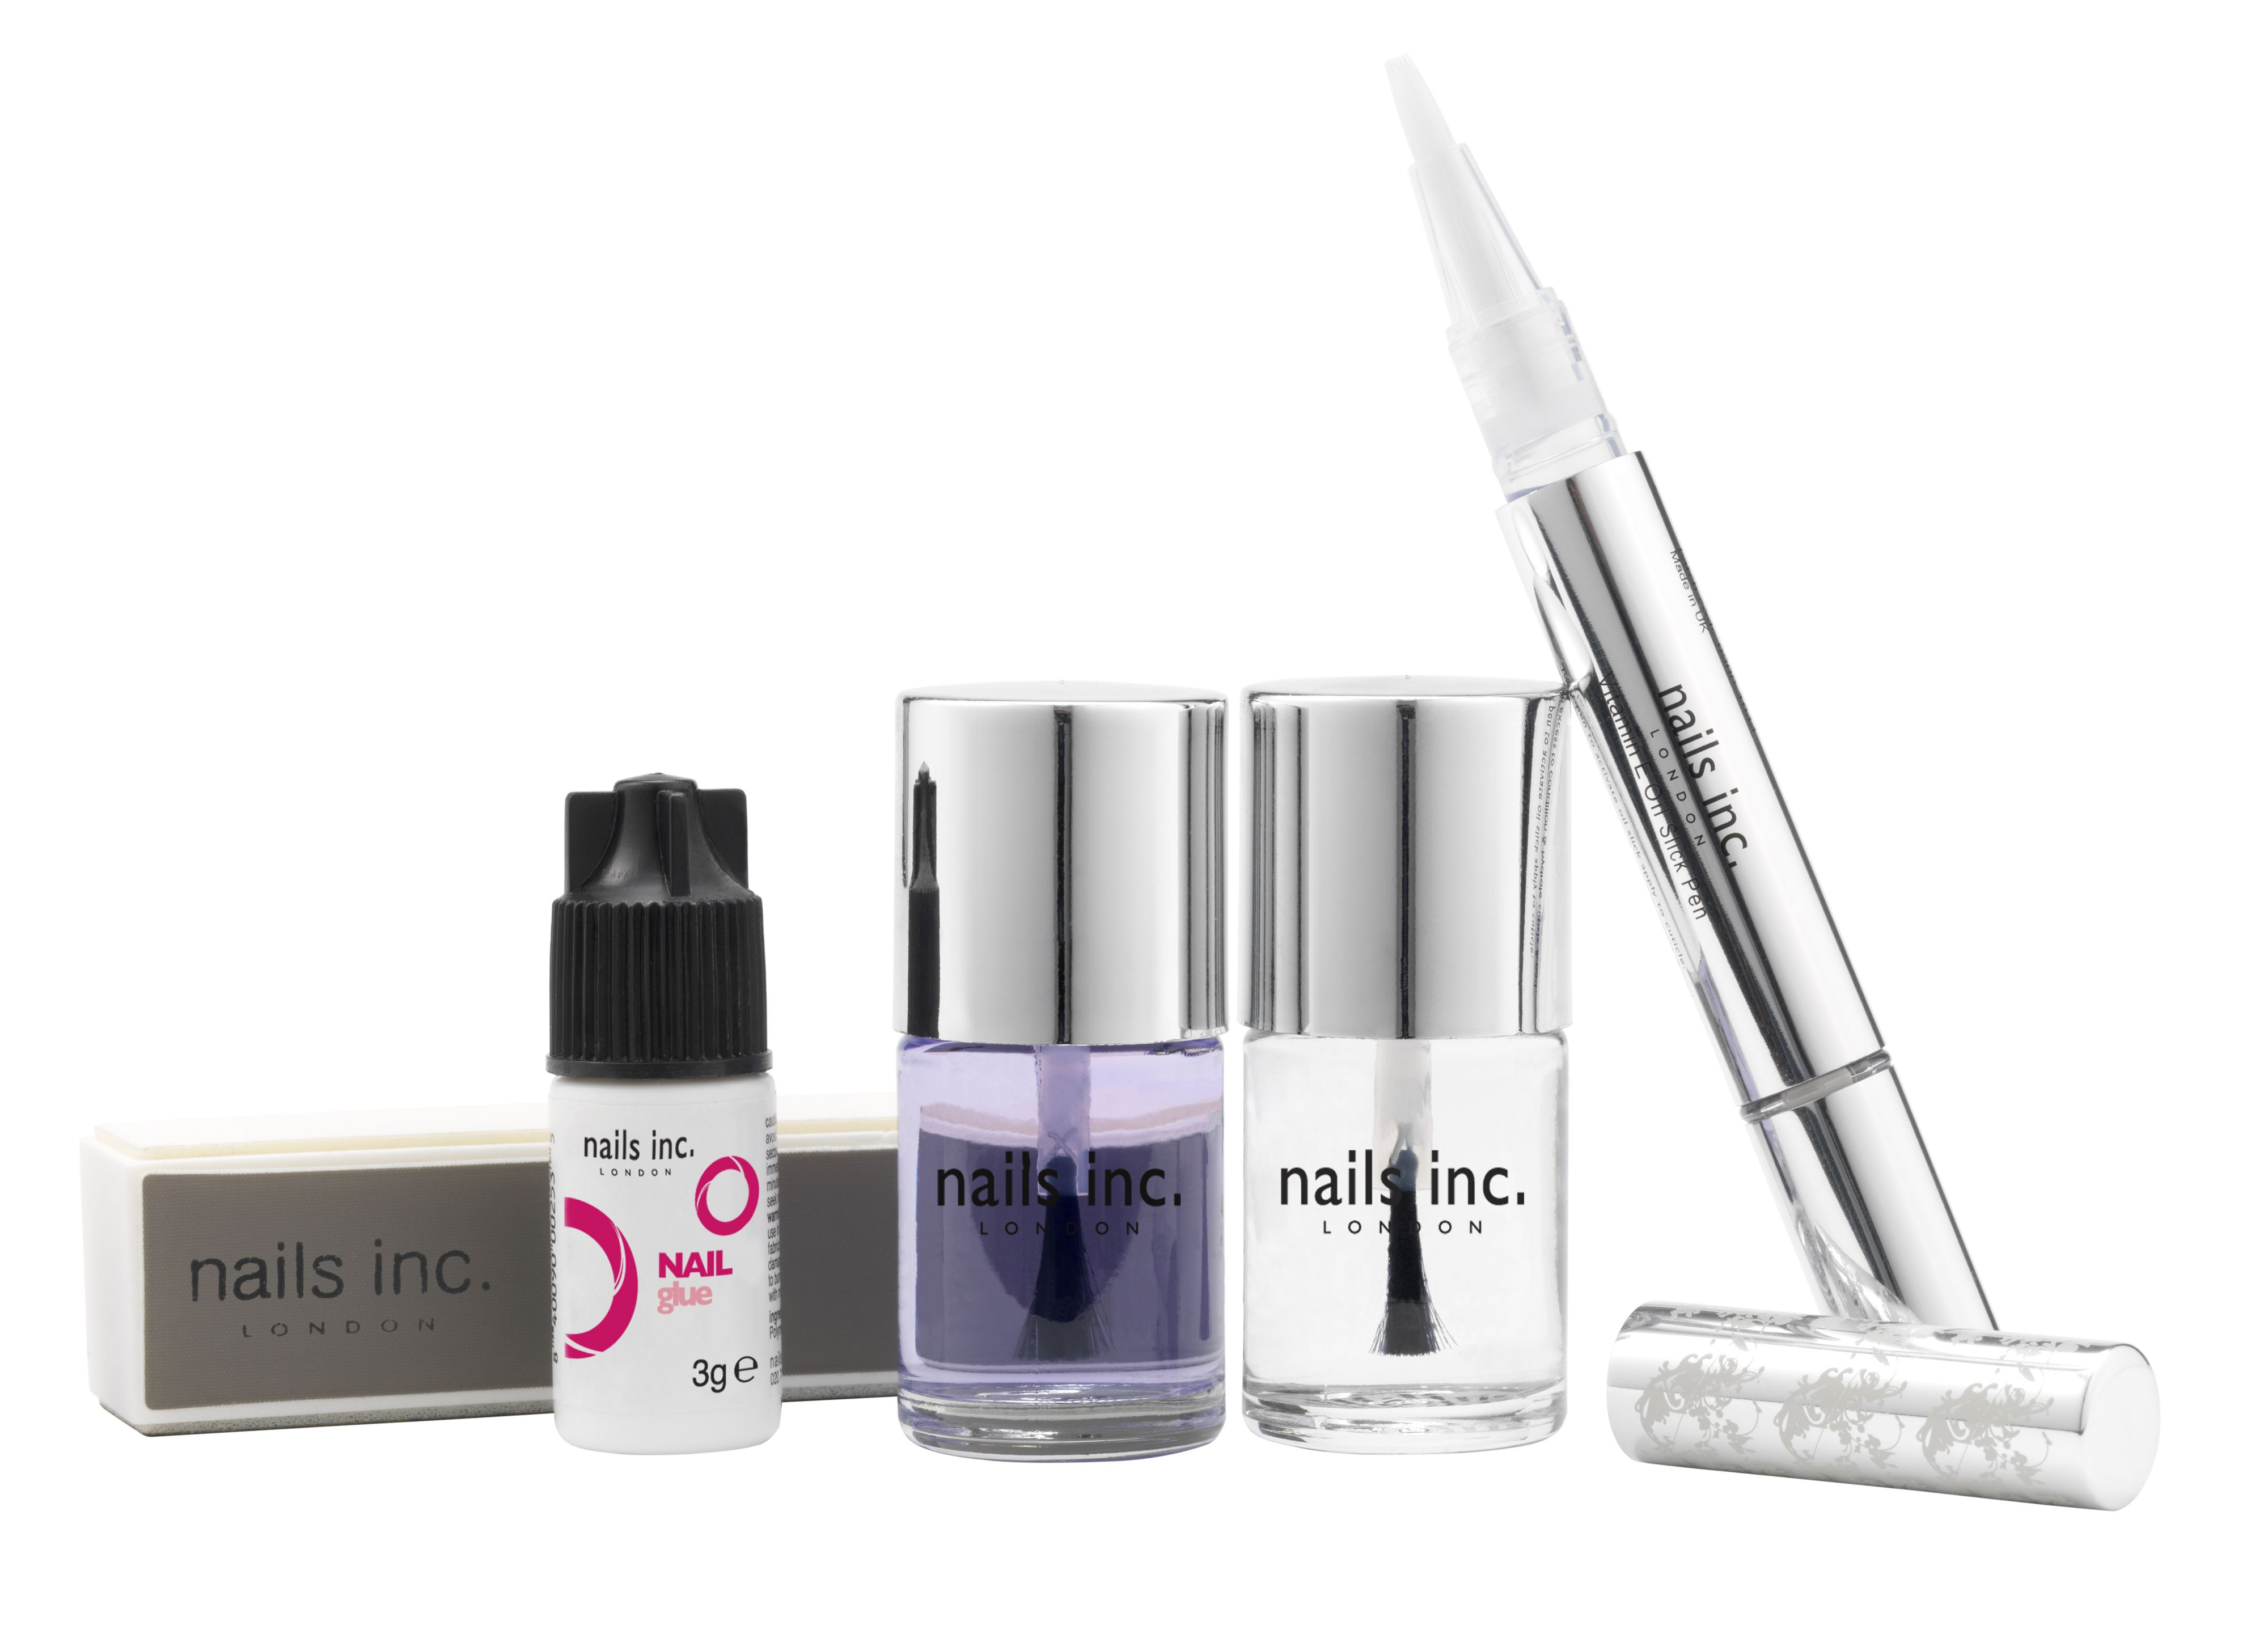 3 week manicure aftercare Kit